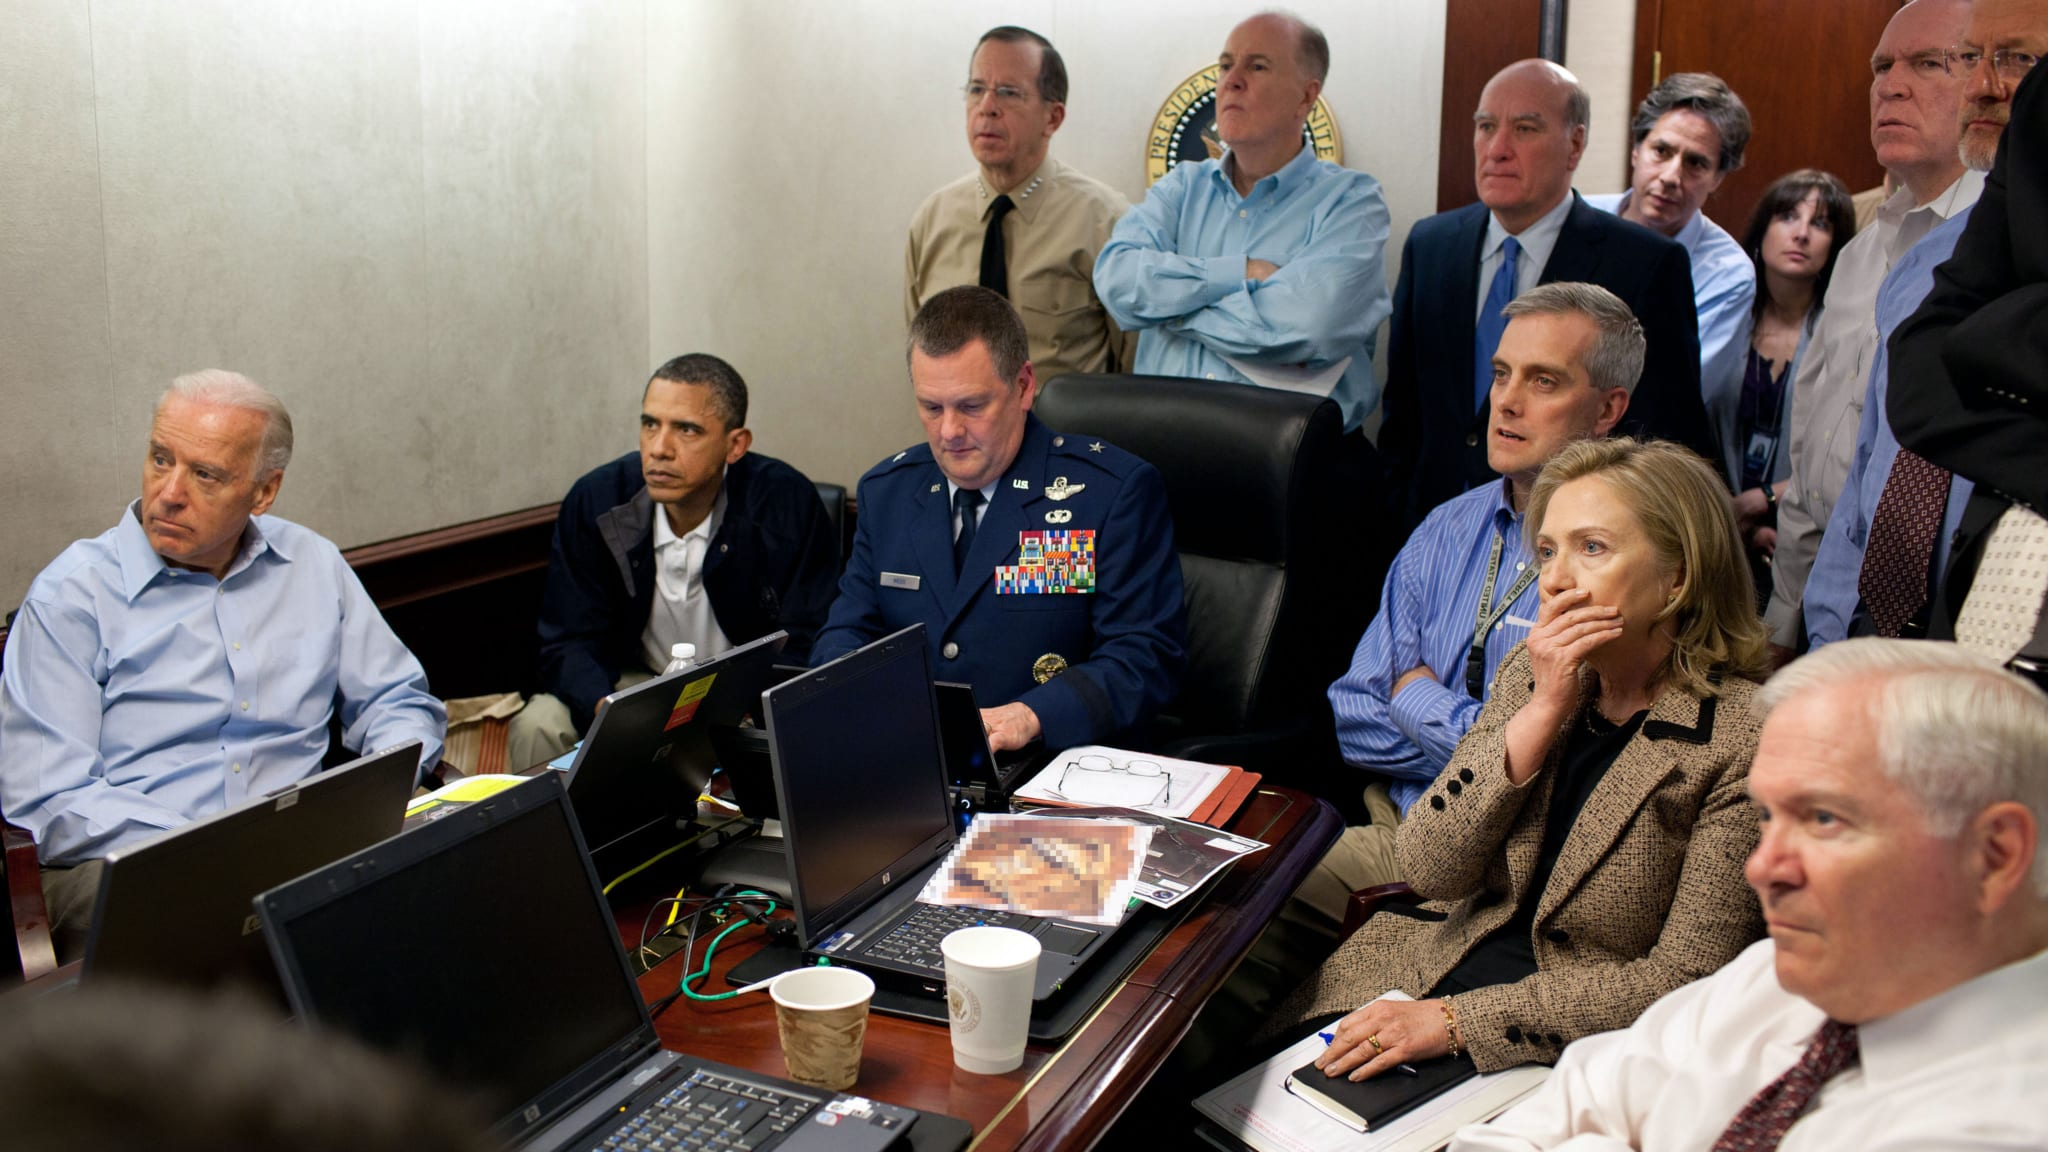 Image Handout image provided by The White House: President Barack Obama, Vice President Joe Biden, Secretary of State Hillary Clinton and members of the national security team receive an update on the mission against Osama bin Laden in the Situation Room of the White House May 1, 2011 (Photo: Pete Souza).